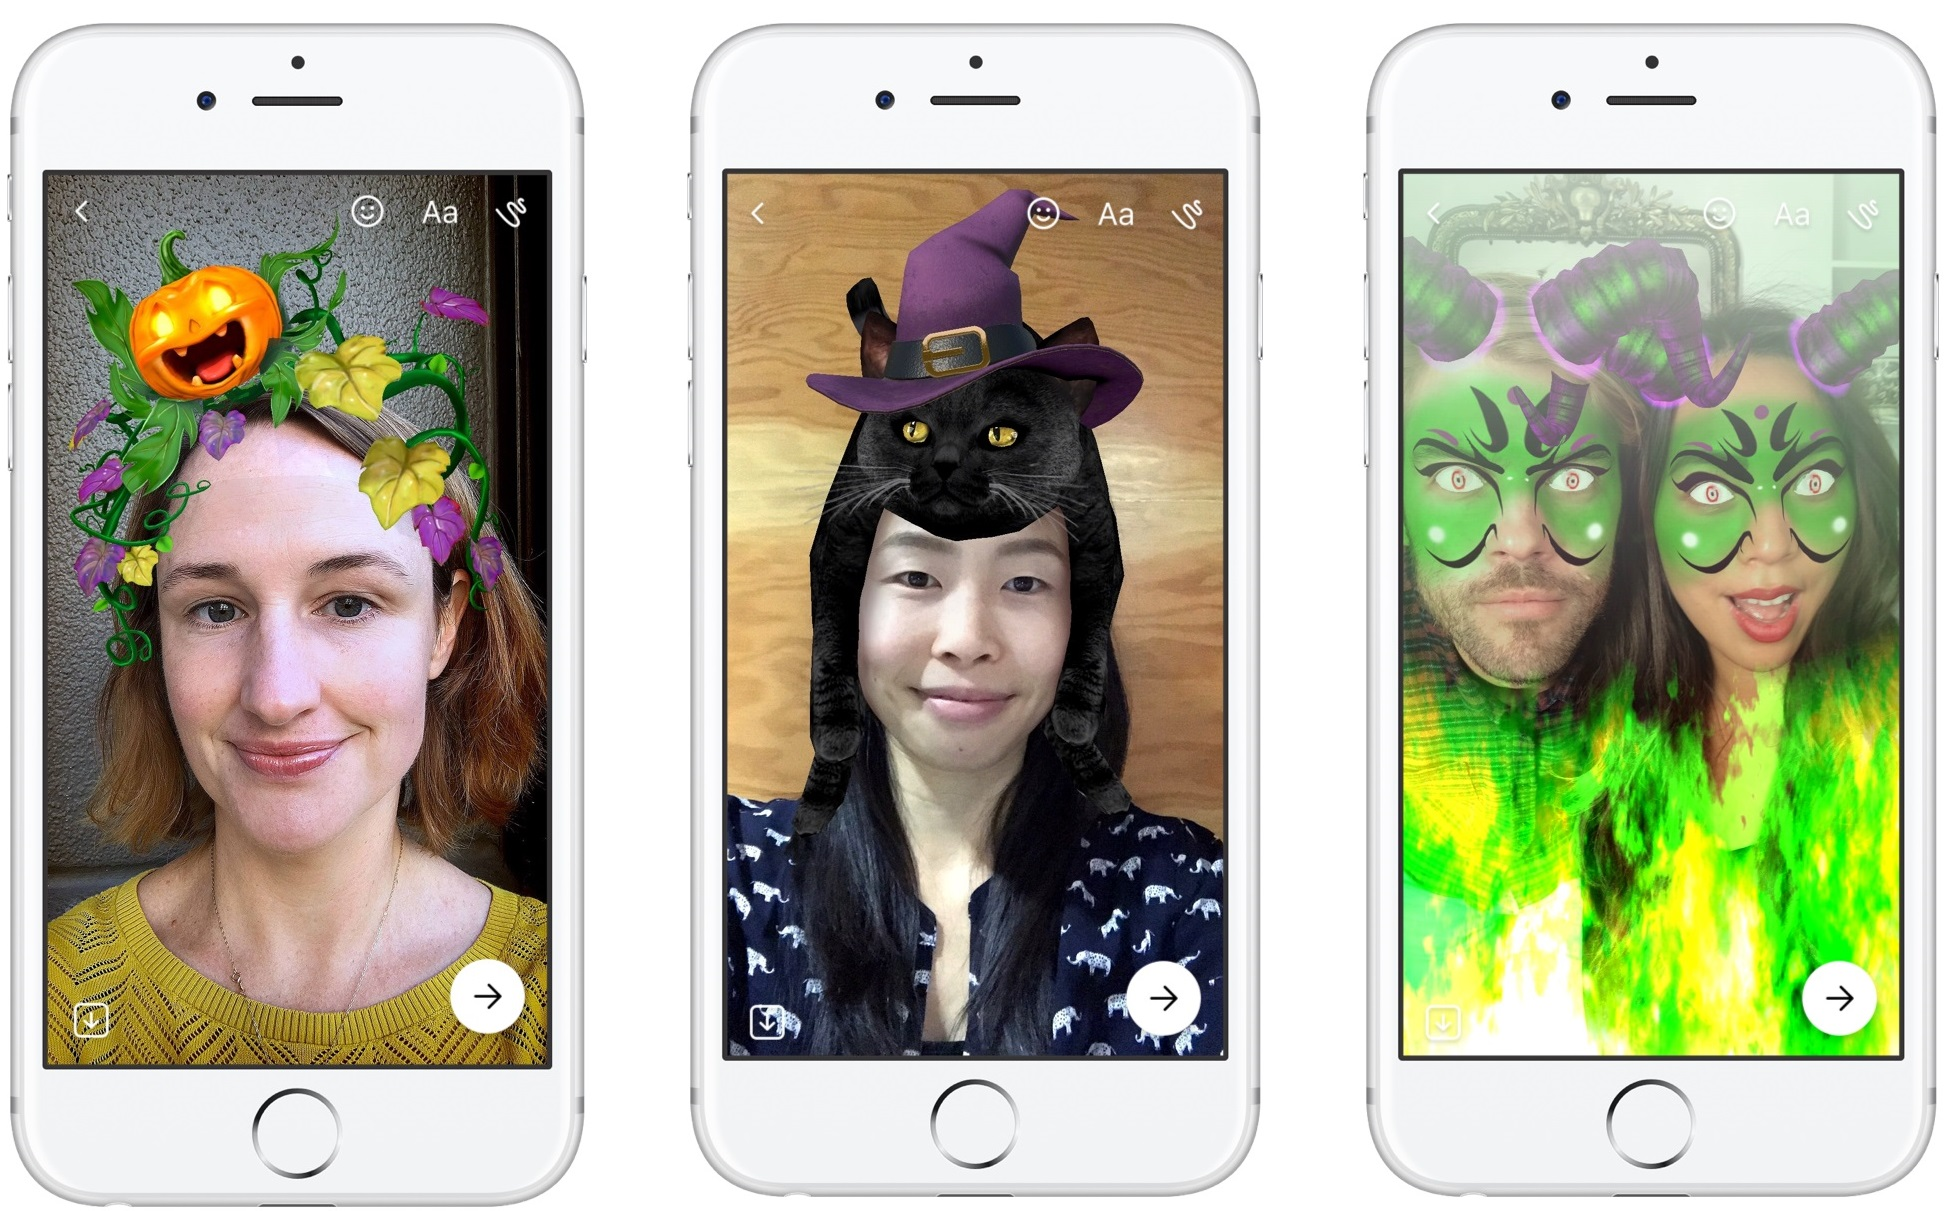 Instagram and Facebook Add New Features for Halloween, Including 'Super Zoom' | Social Media Today